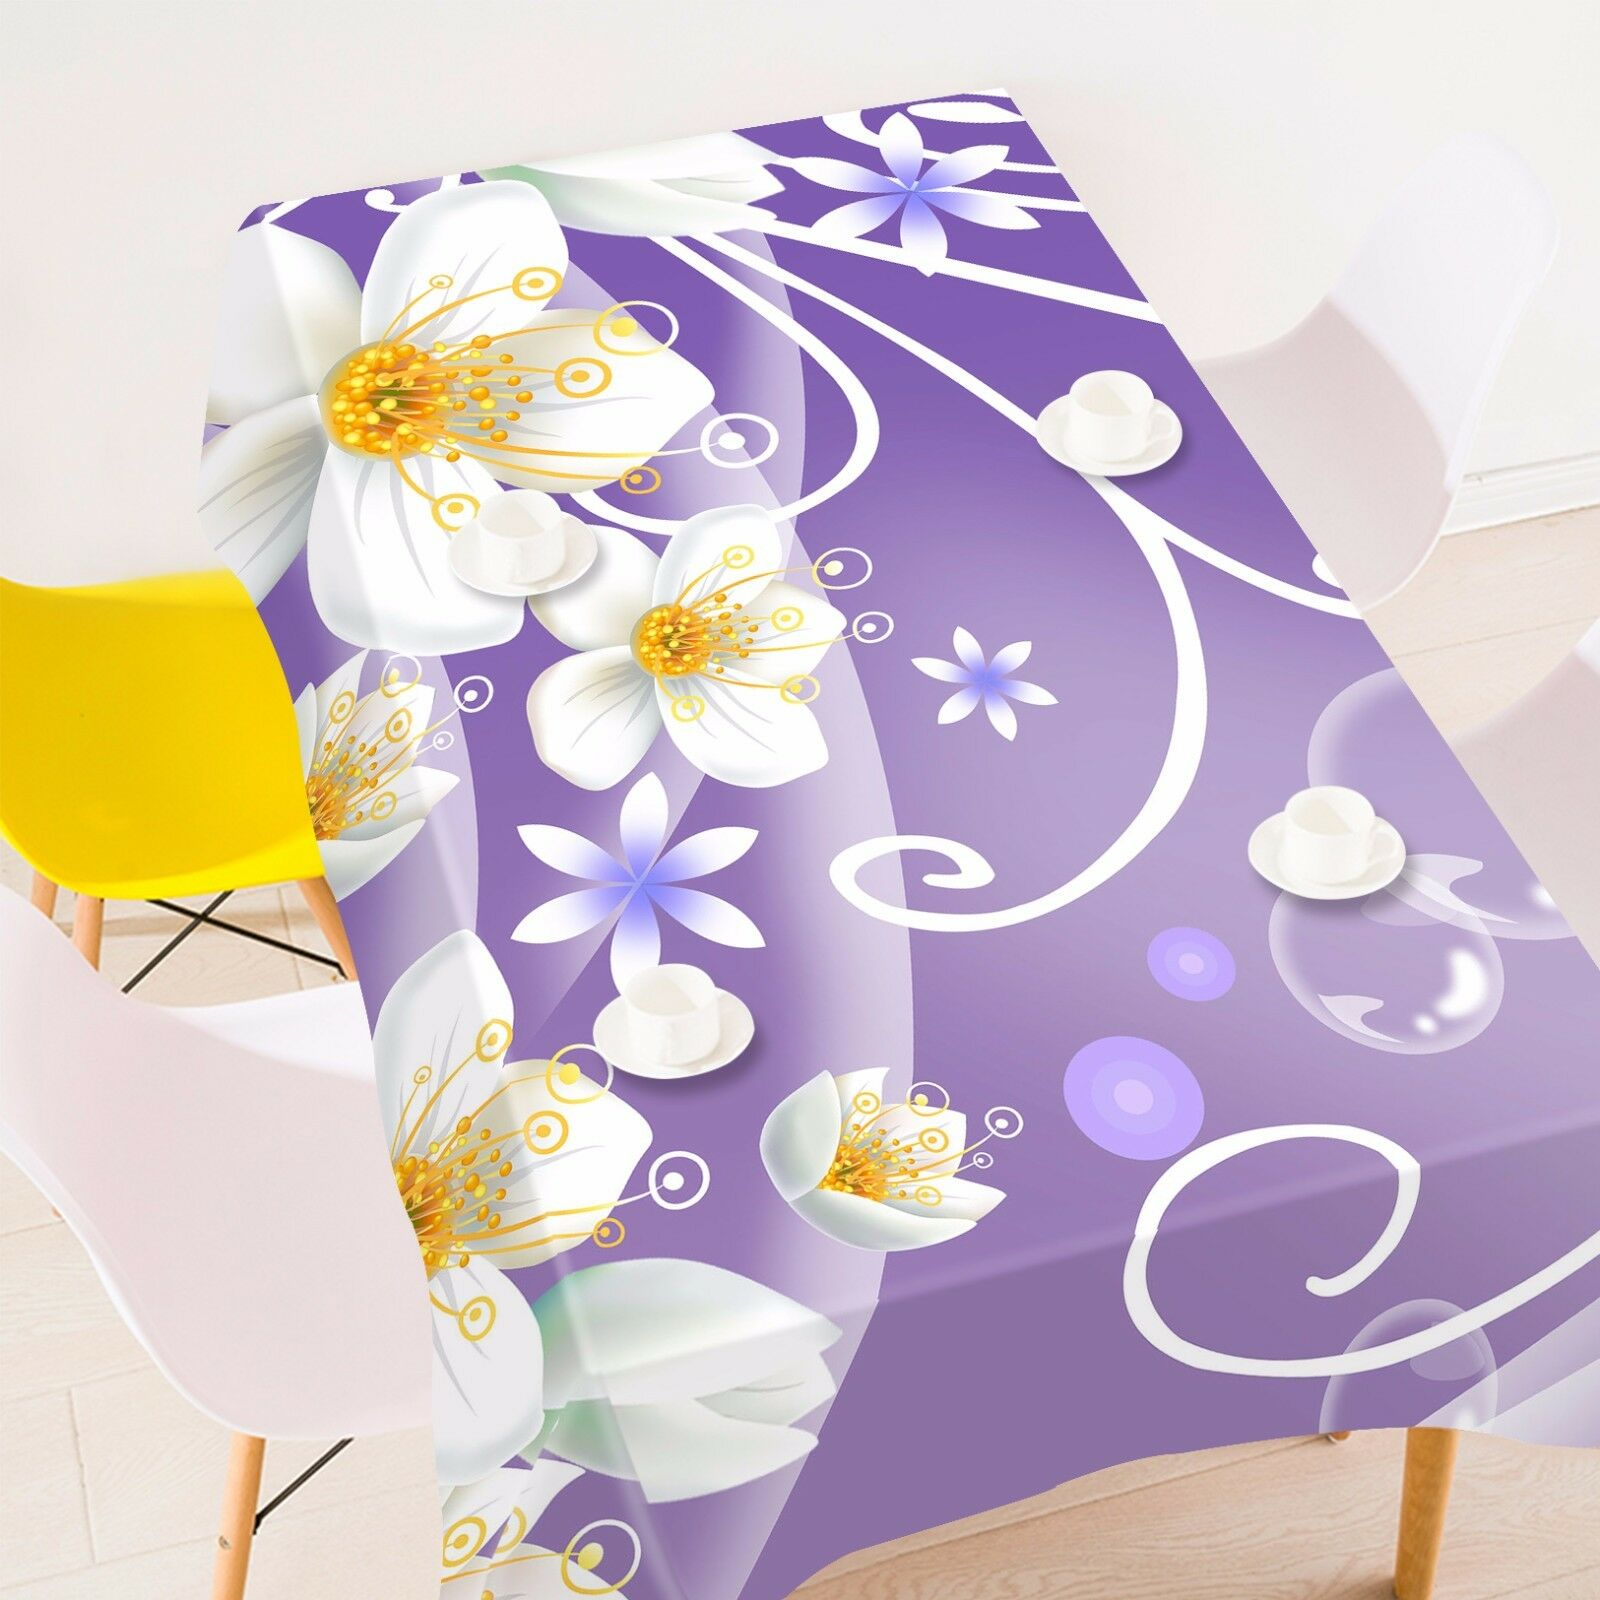 3D Flower 4278 Tablecloth Table Cover Cloth Birthday Party Event AJ WALLPAPER AU